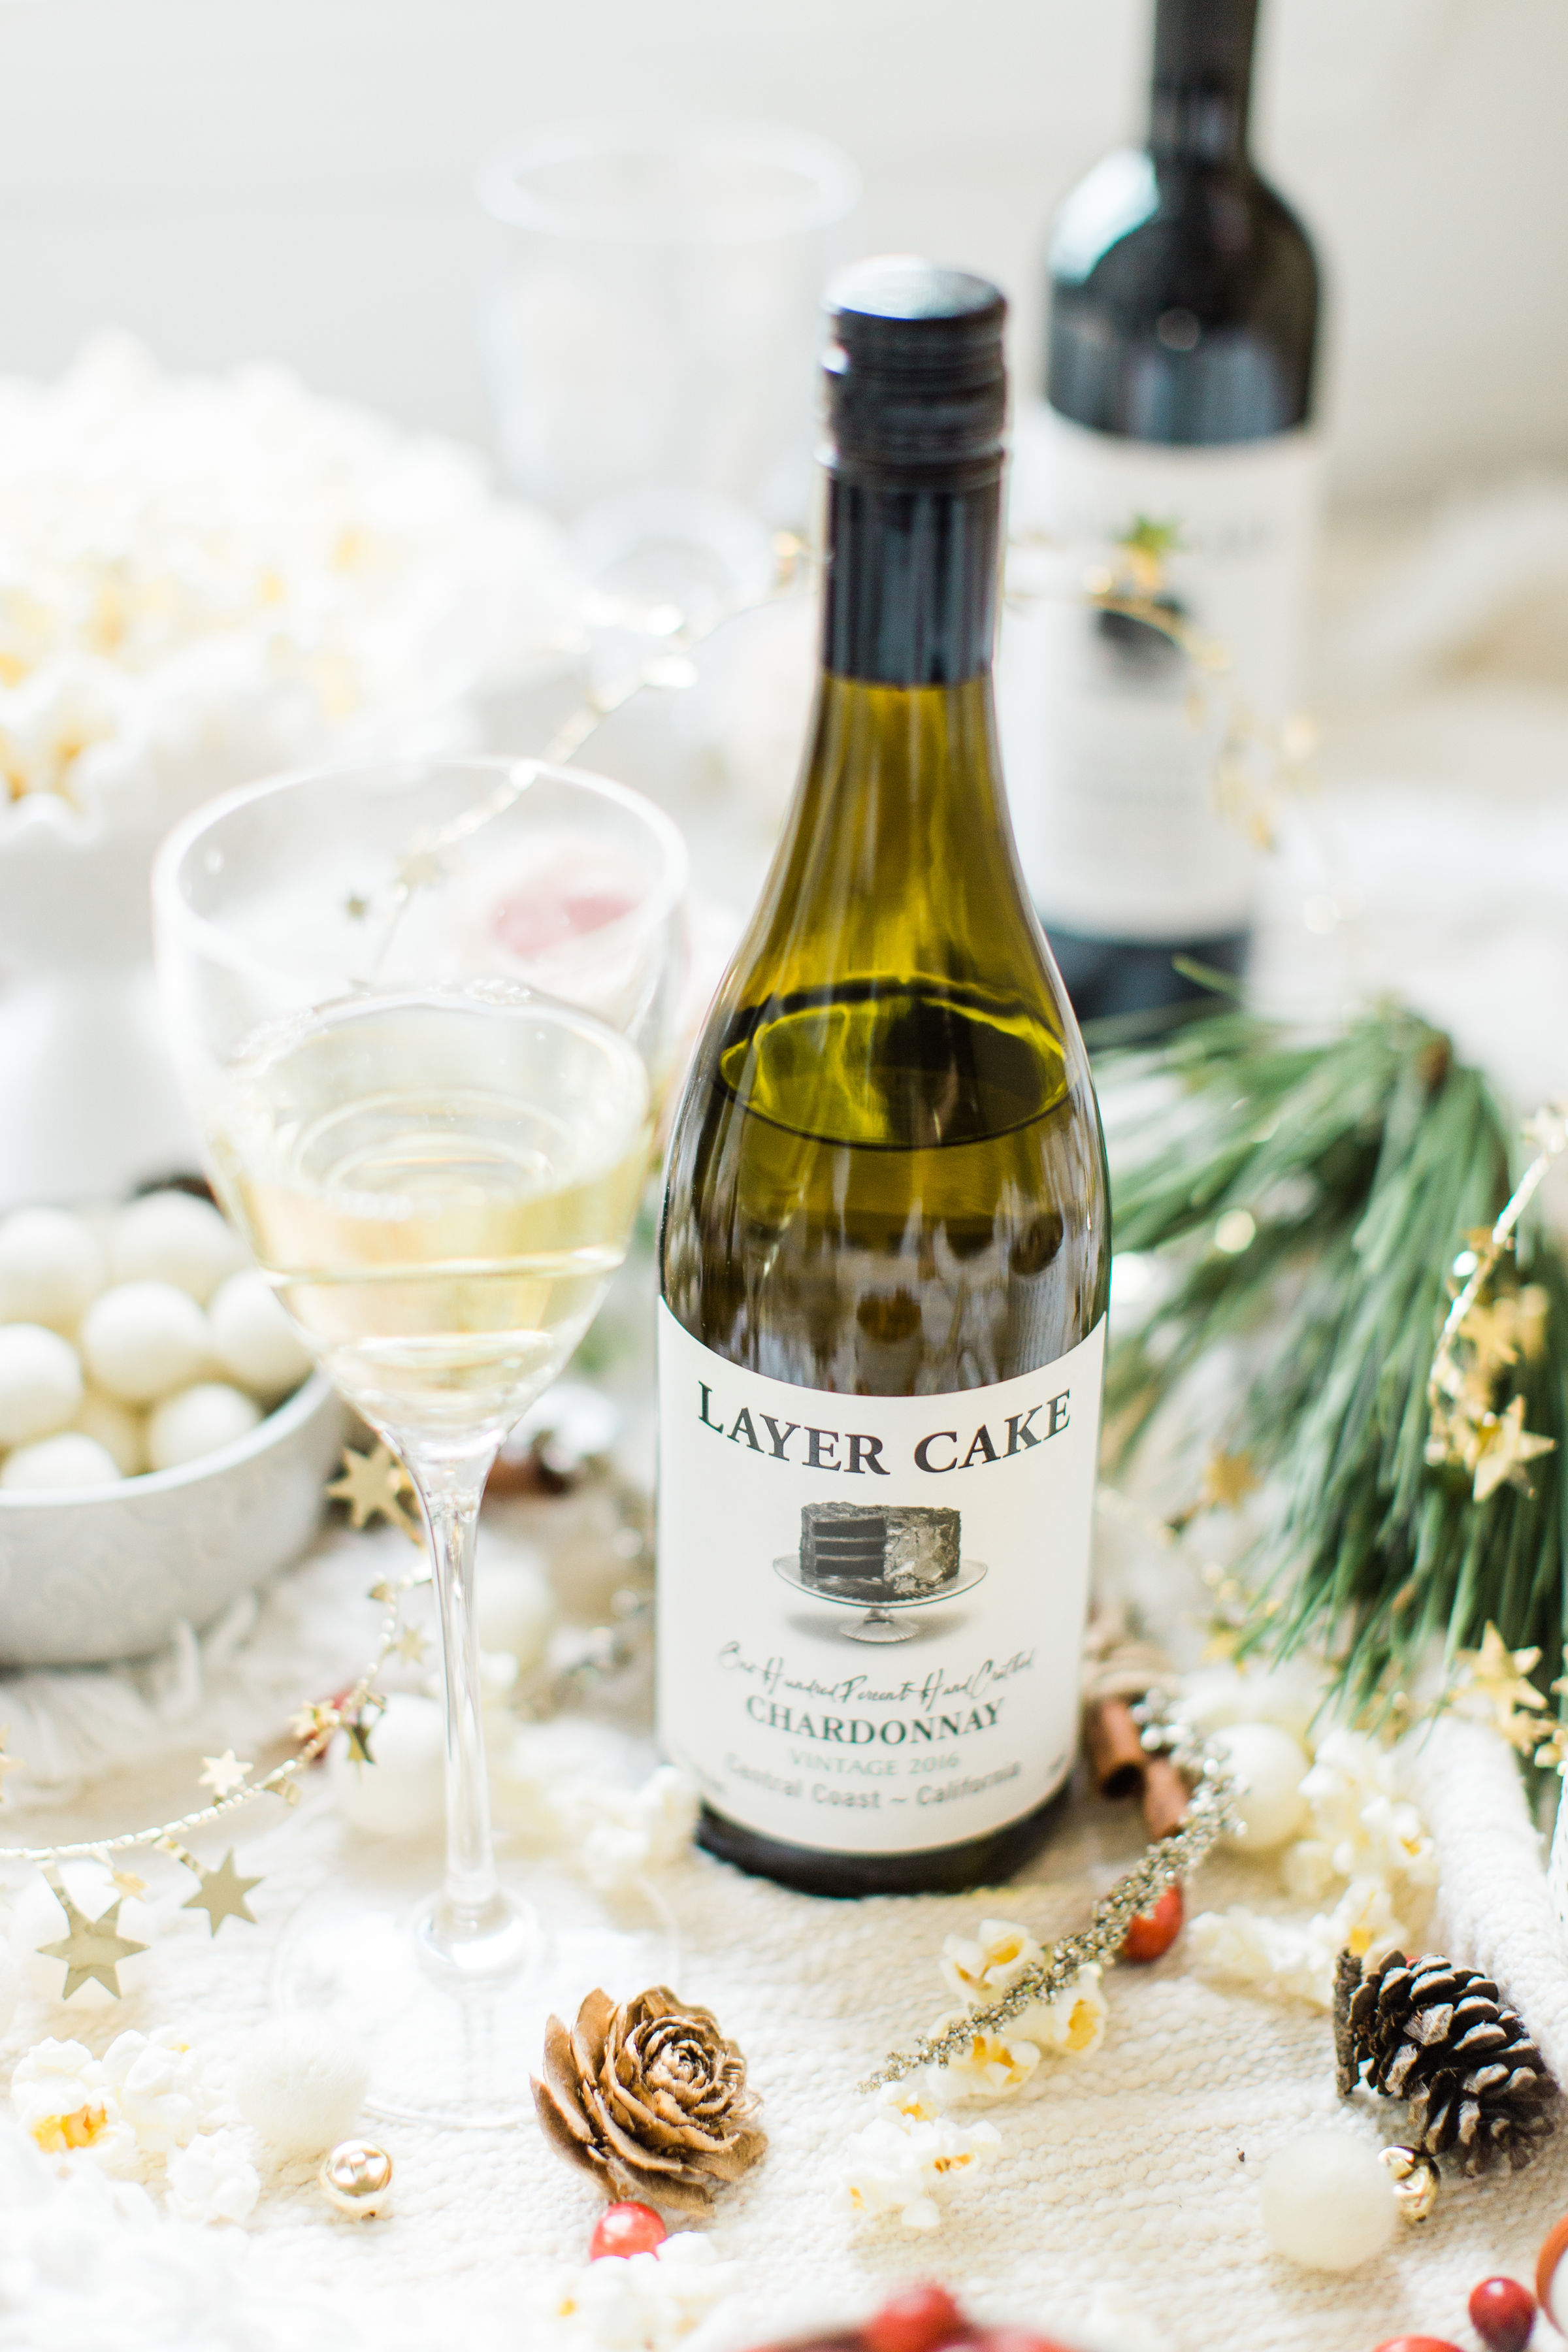 Layer Cake Wine. #holidayparty #christmasparty #diychristmas #diyholidays #garland #holidaygarland #diyholidaygarland #diygarland #christmasgarland #holidaygirlsnight #christmasgirlsnight | glitterinc.com | @glitterinc